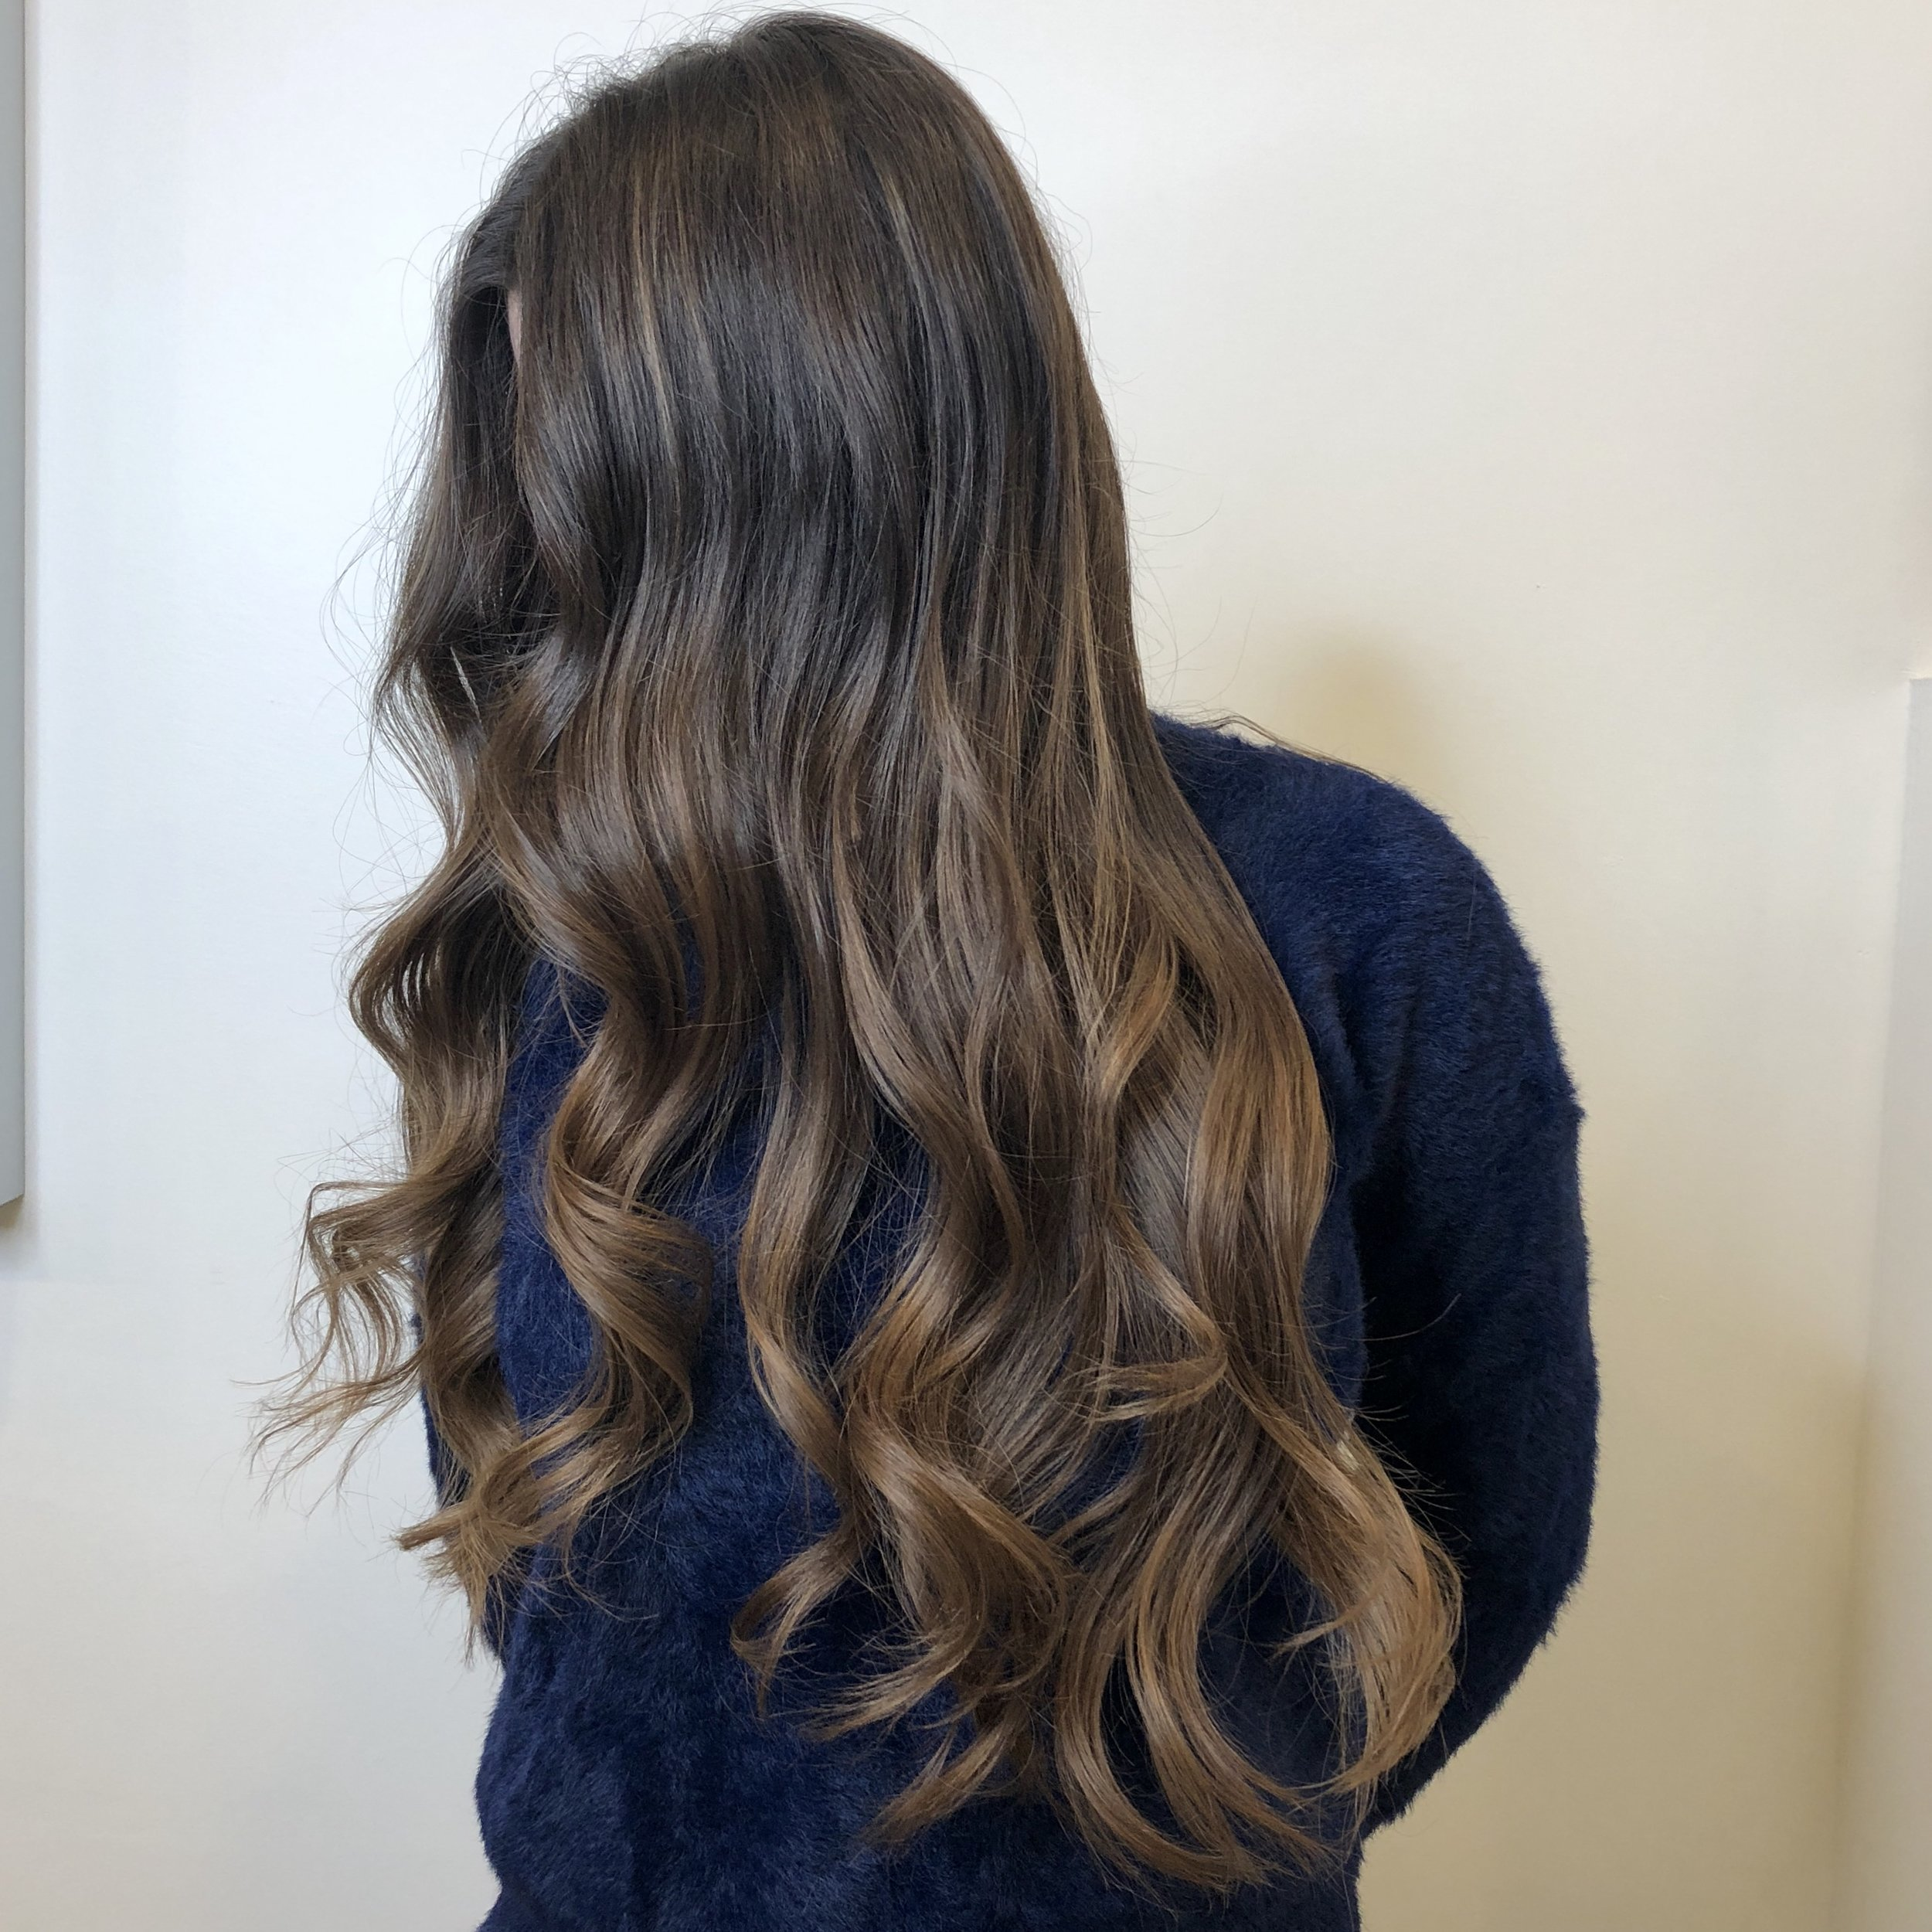 Subtle Tone Change - Ombre is back my friends..... No, not like that unfortunate 2014 ombre but a beautiful tone change from your natural shade to only a shade or two lighter. This trend is doable for any and every color - whether you are blonde, brunette, red or even a fashion color.